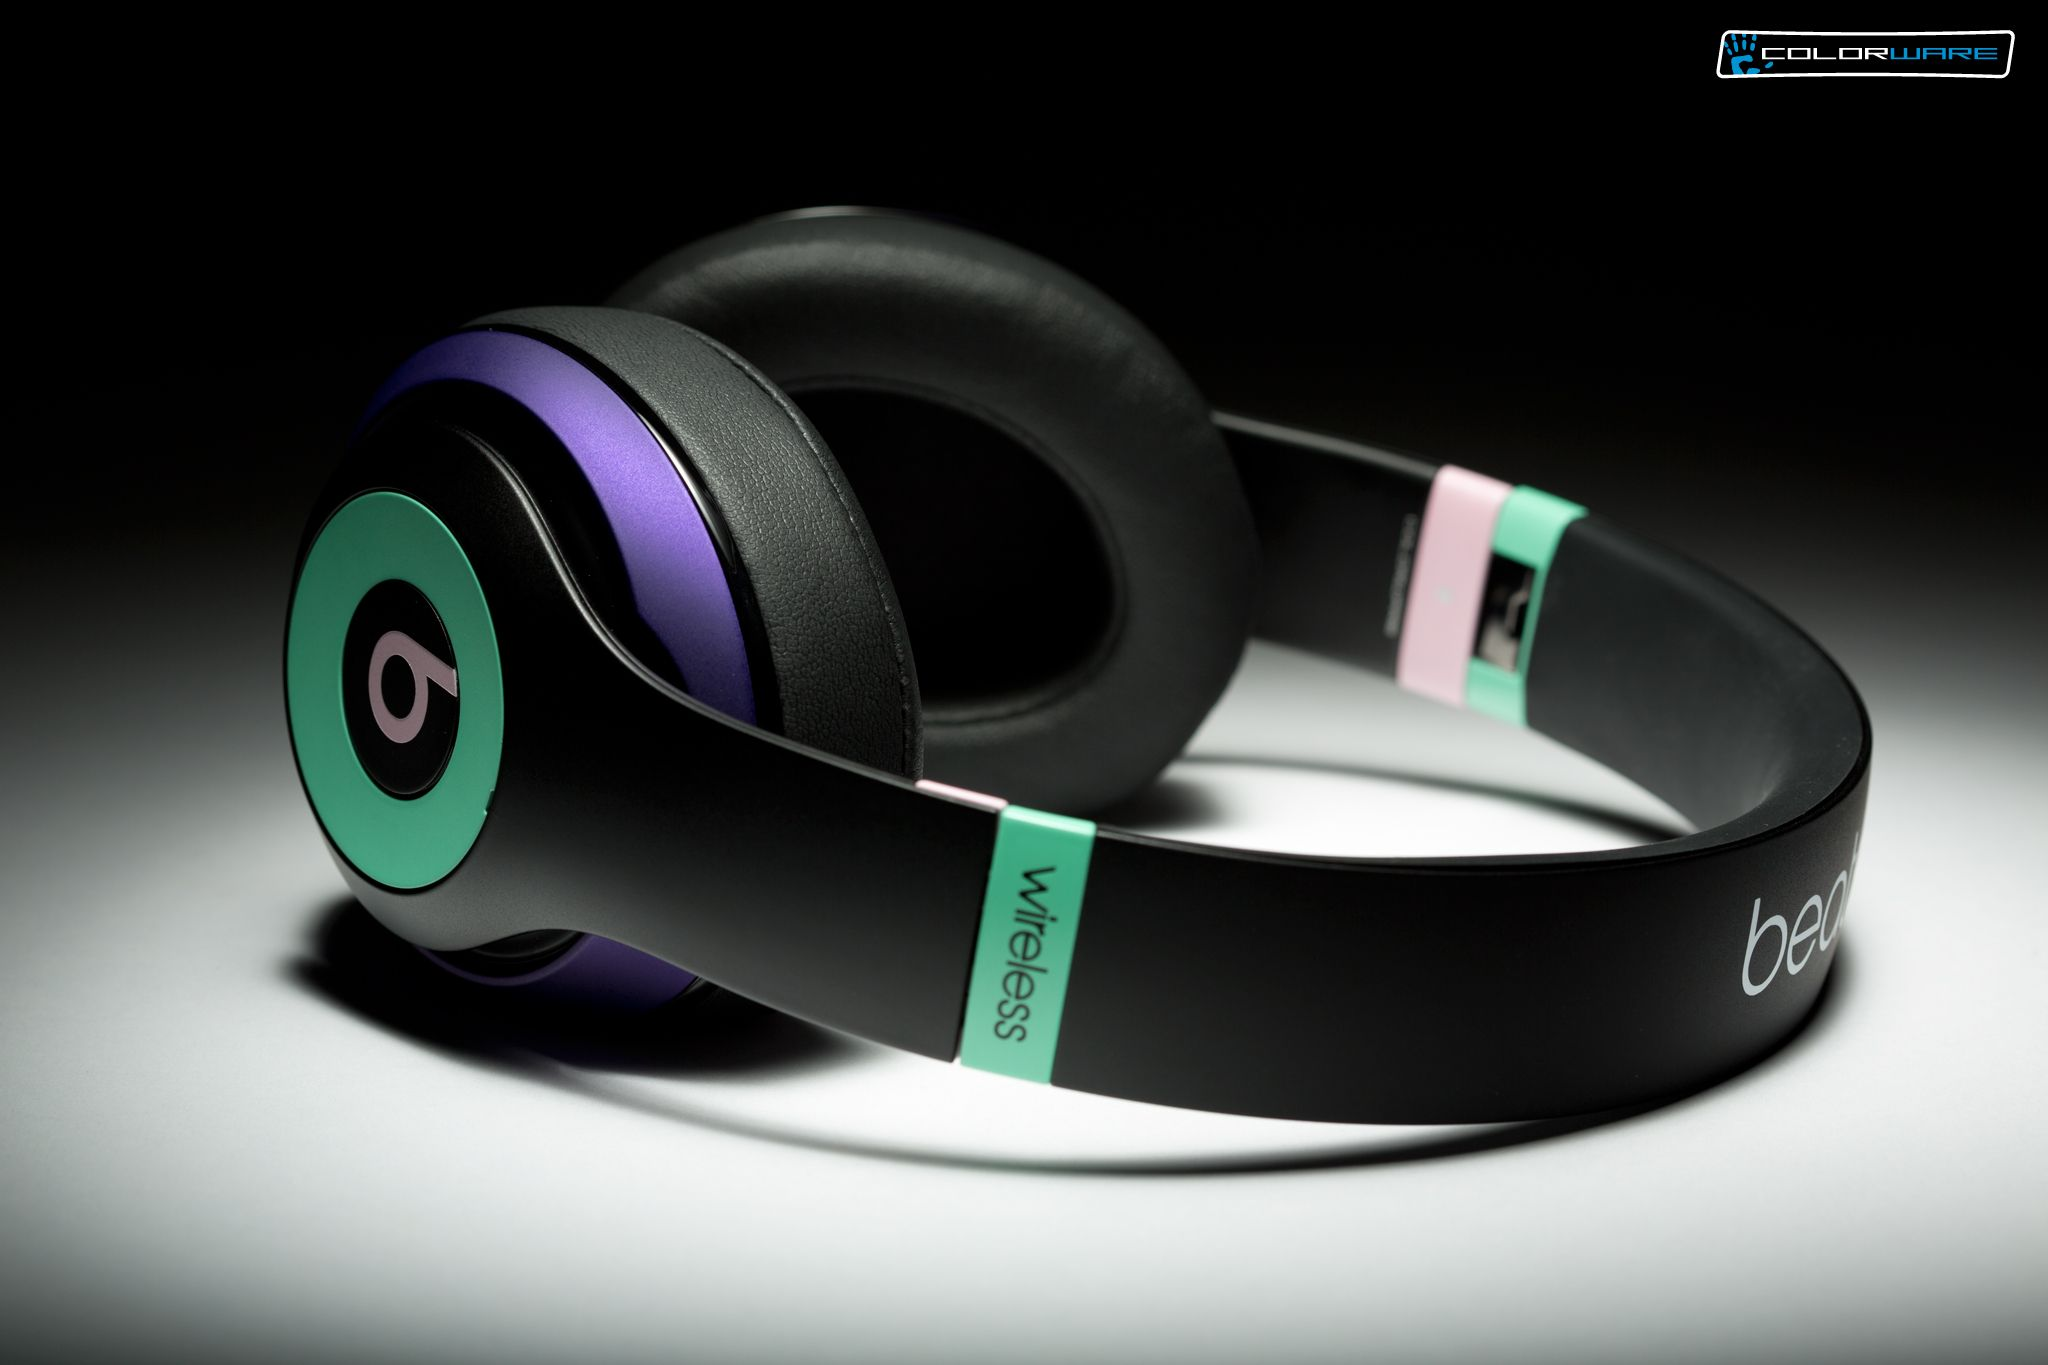 Lovin' this customer's color selection! What do you think? #colorware   #custom   #colorchoice  +Beats by Dre #headphones